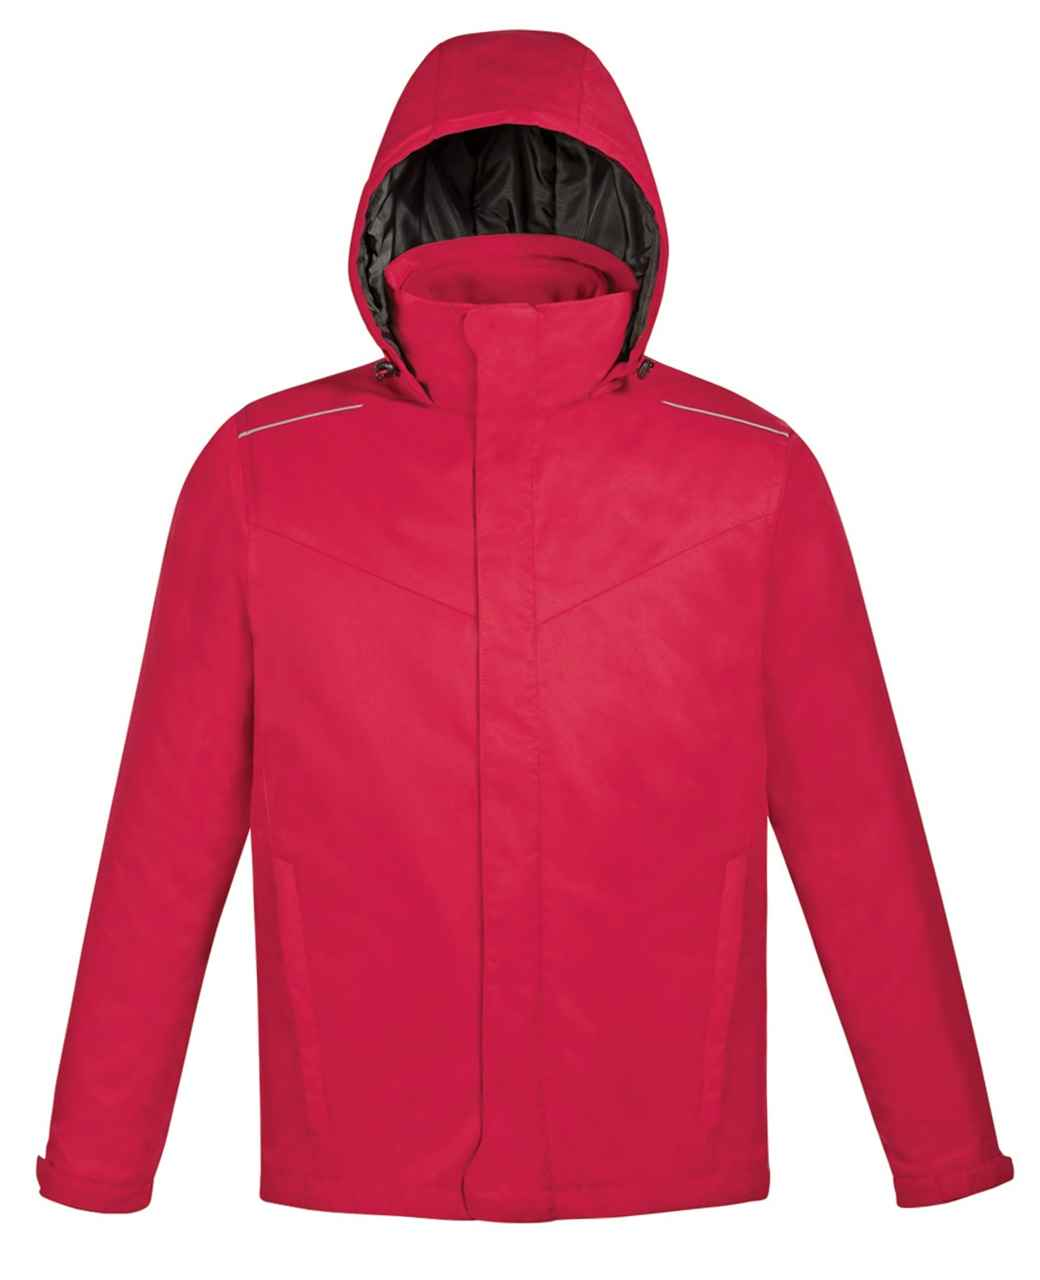 Picture of Core365 Men's 3-In-1 Jacket With Fleece Liner